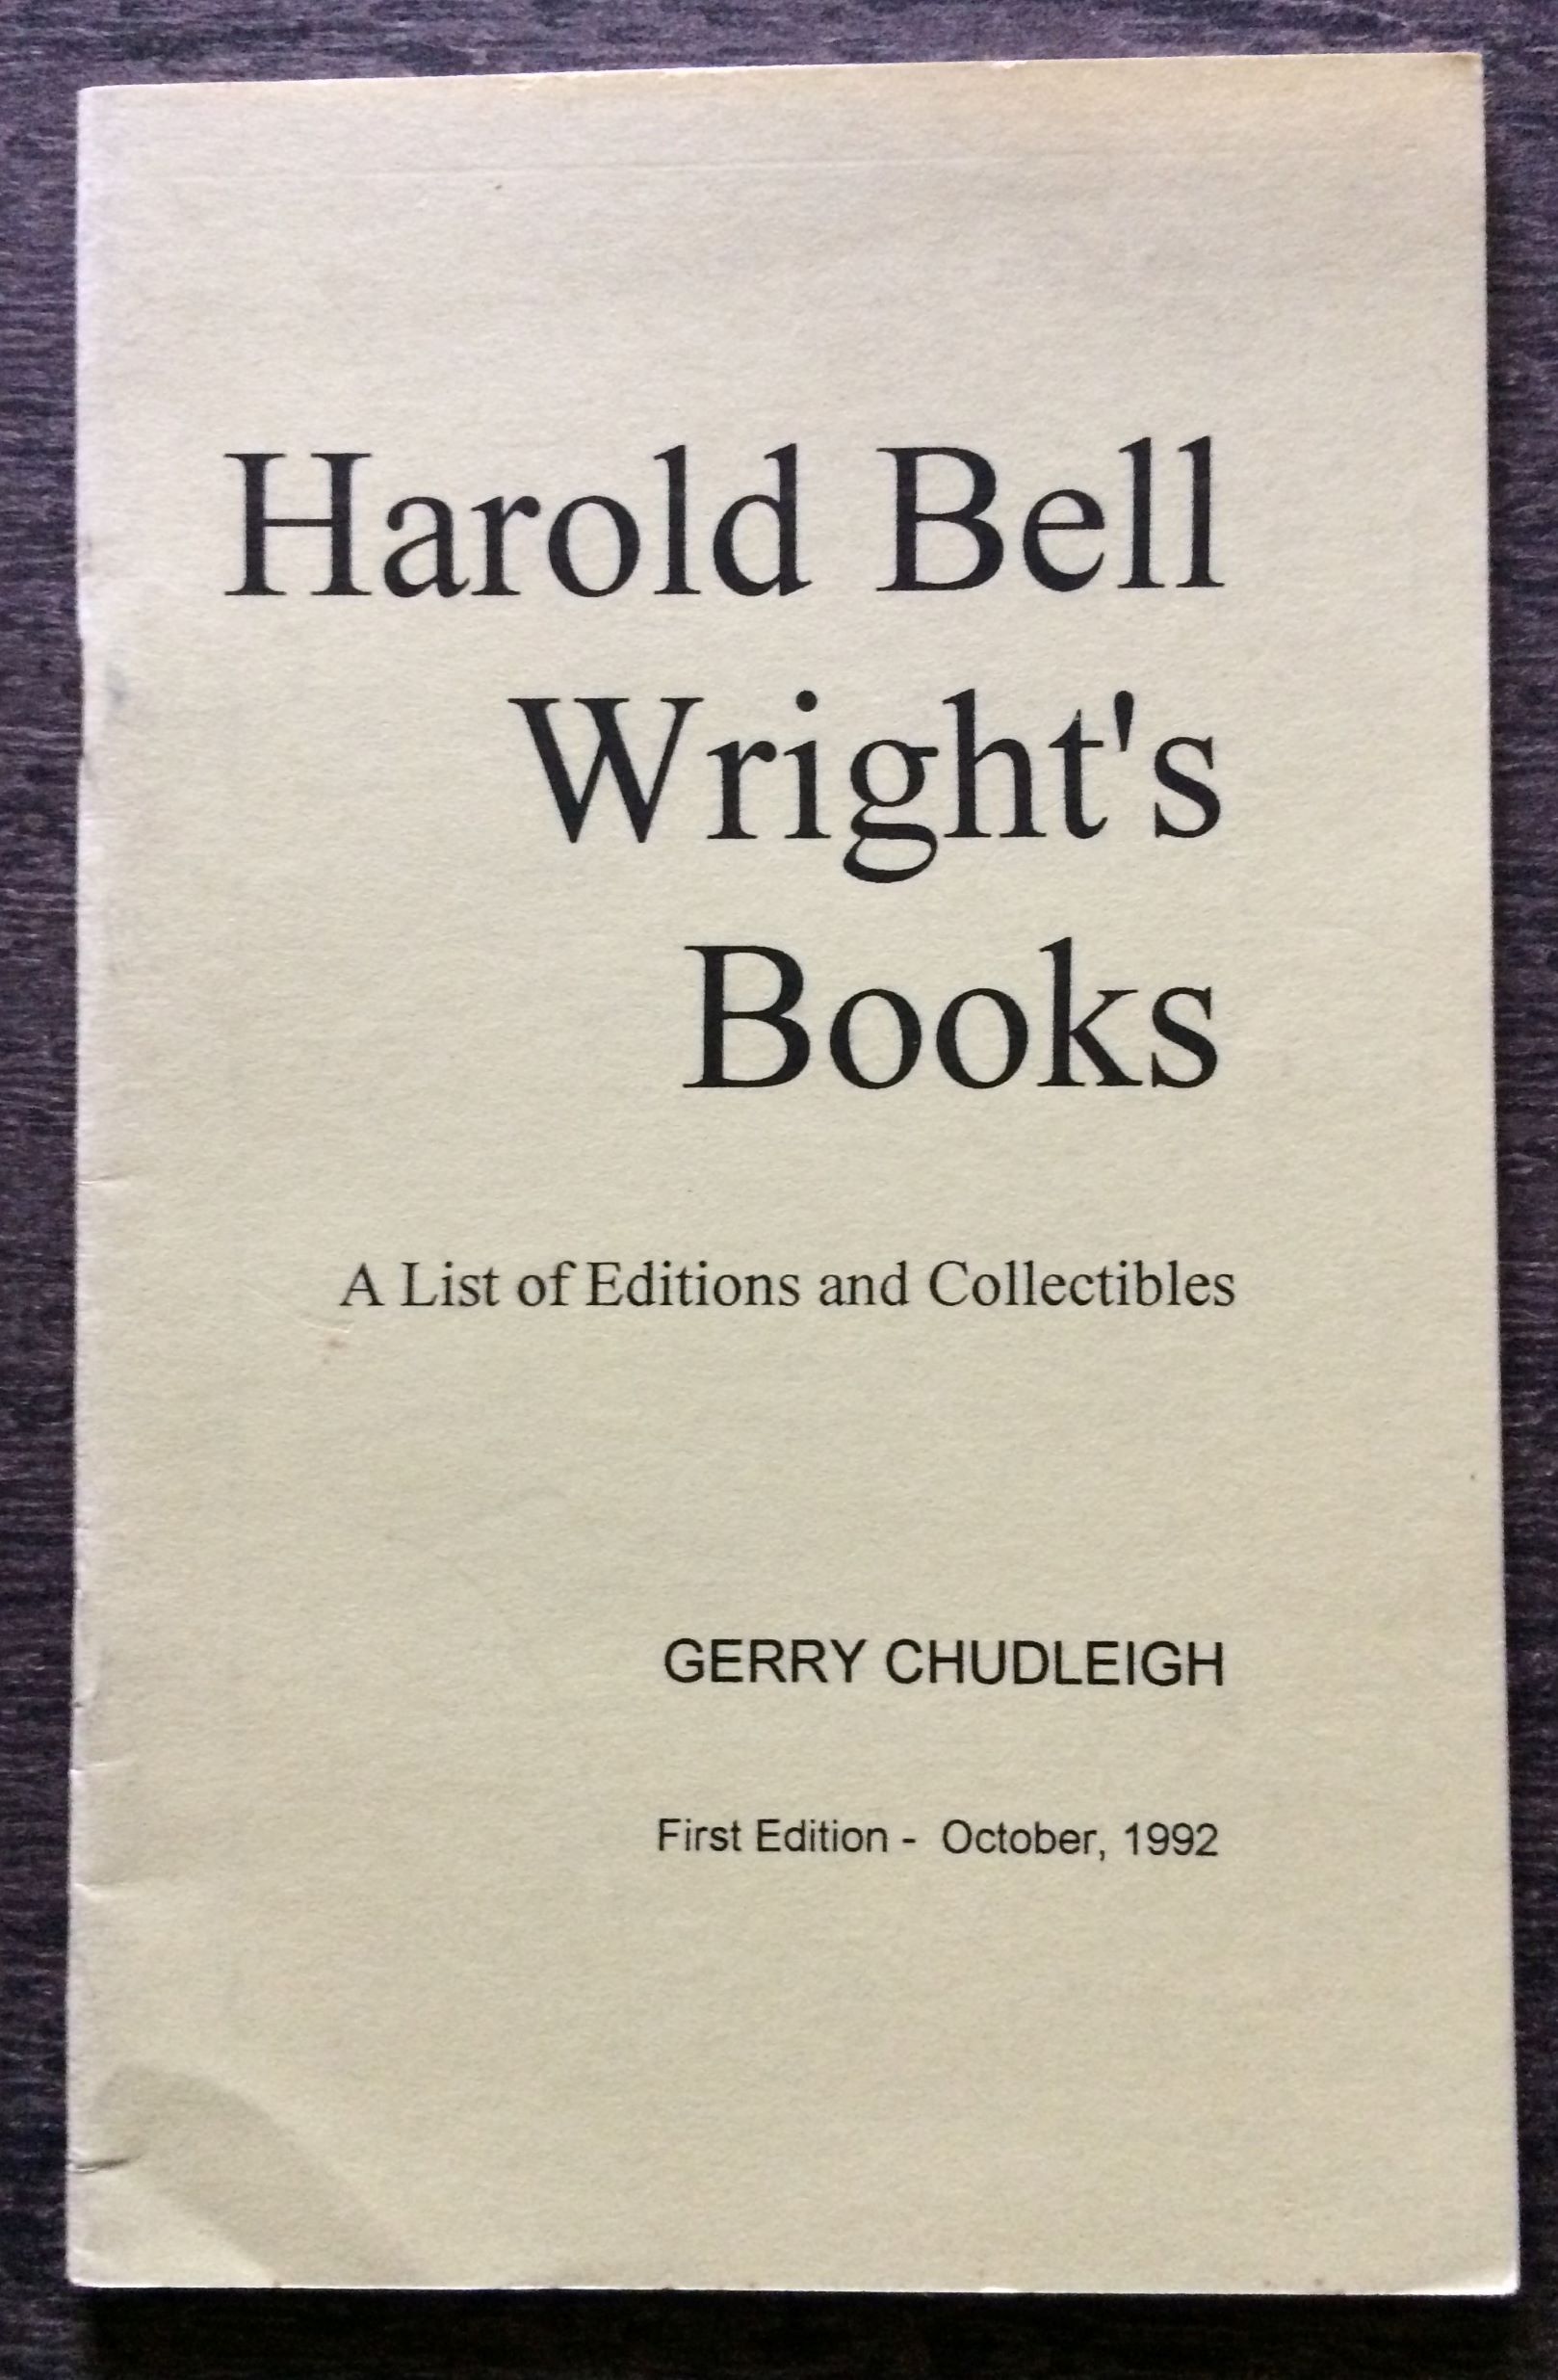 Image for Harold Bell Wright's Books. A List of Editions and Collectibles.